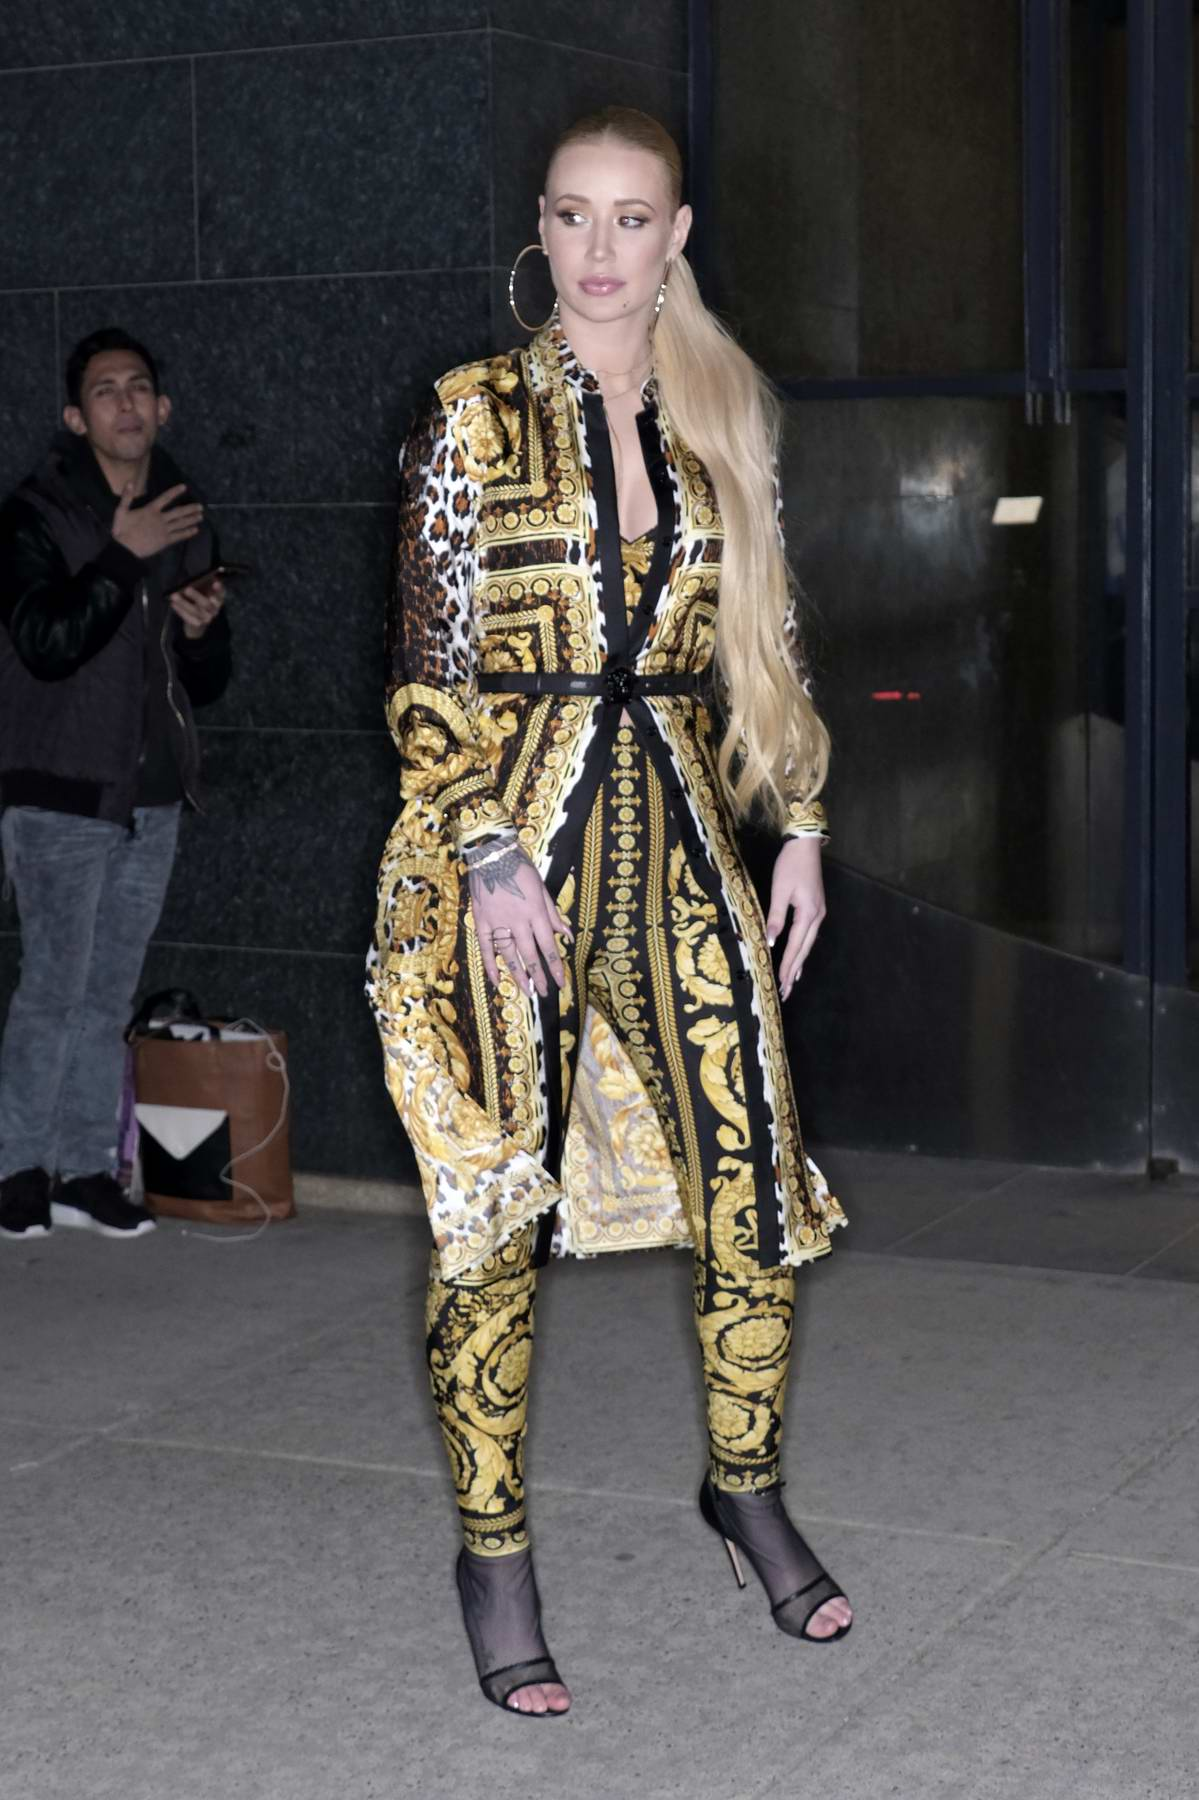 Iggy Azalea arrives at 'Watch What Happens Live' TV show in New York City